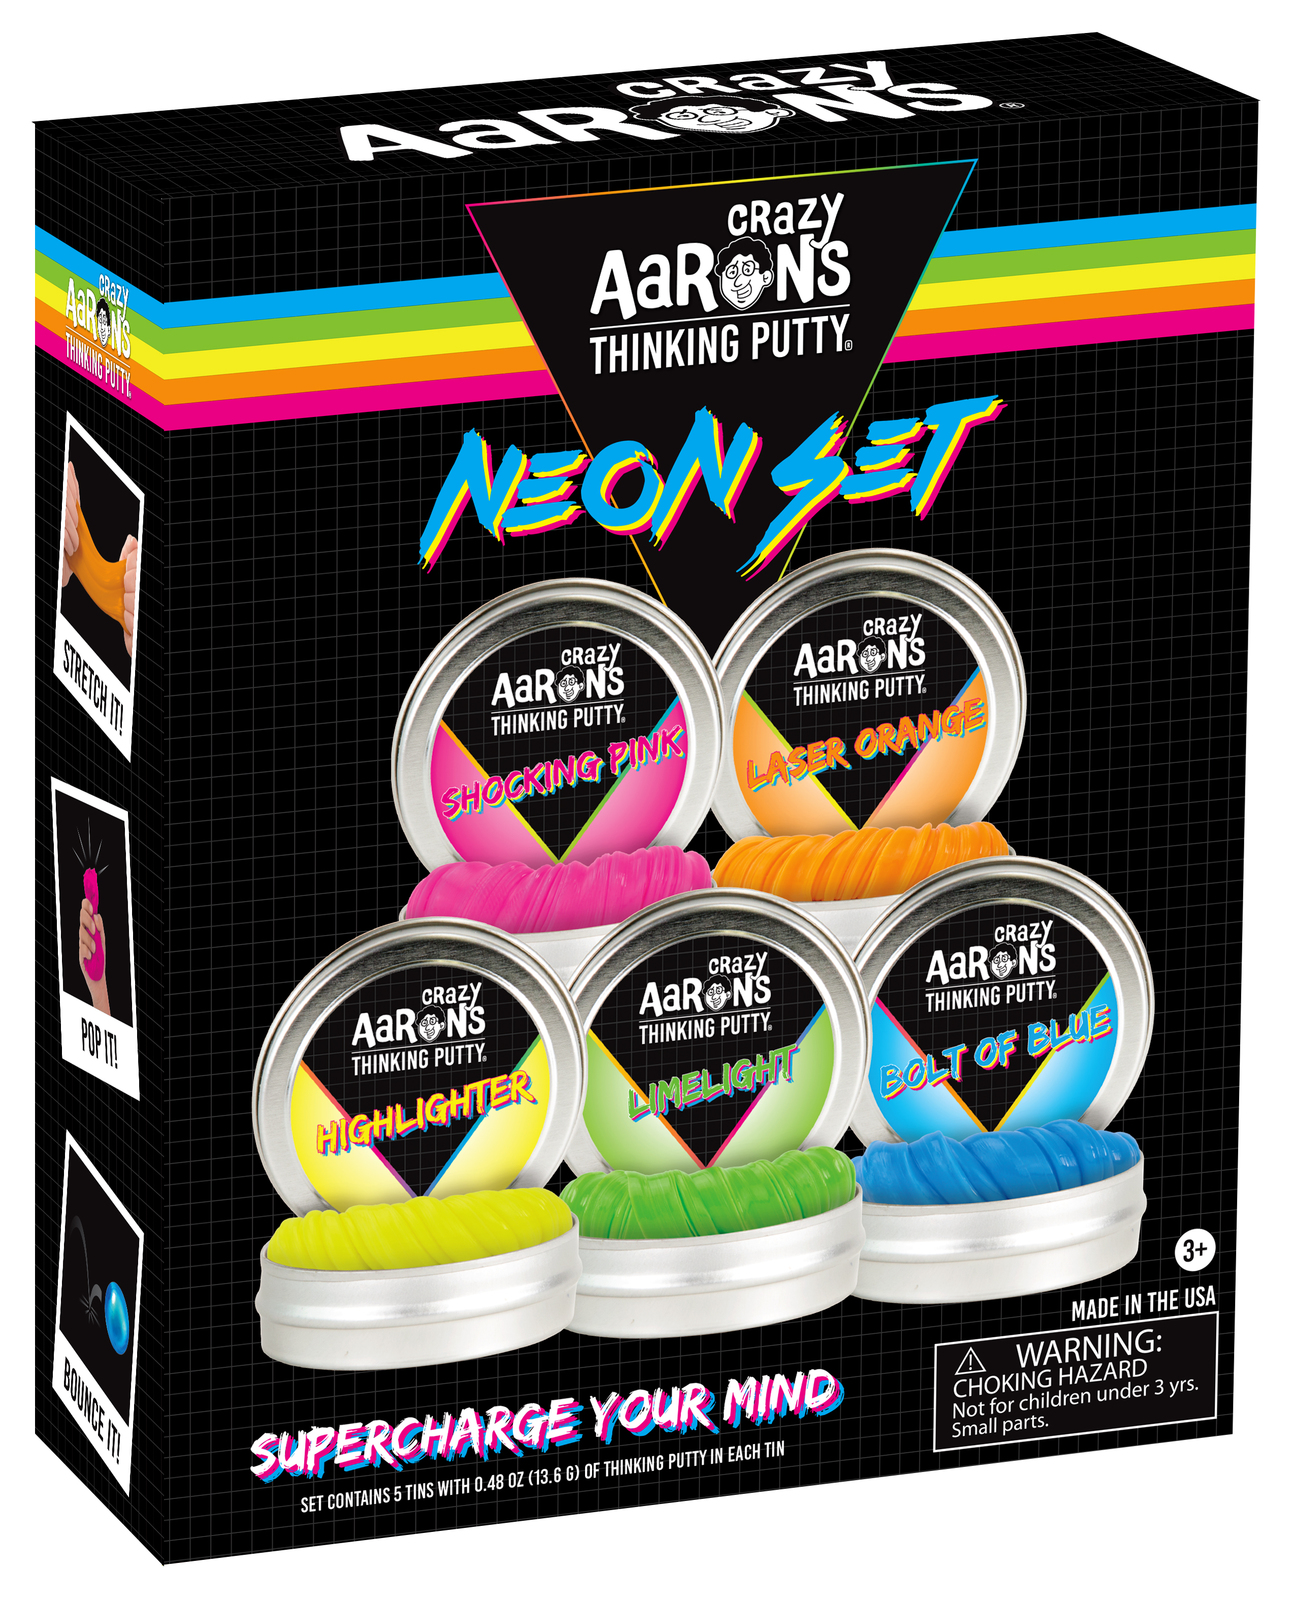 Crazy Aarons: Thinking Putty - Neon Set image